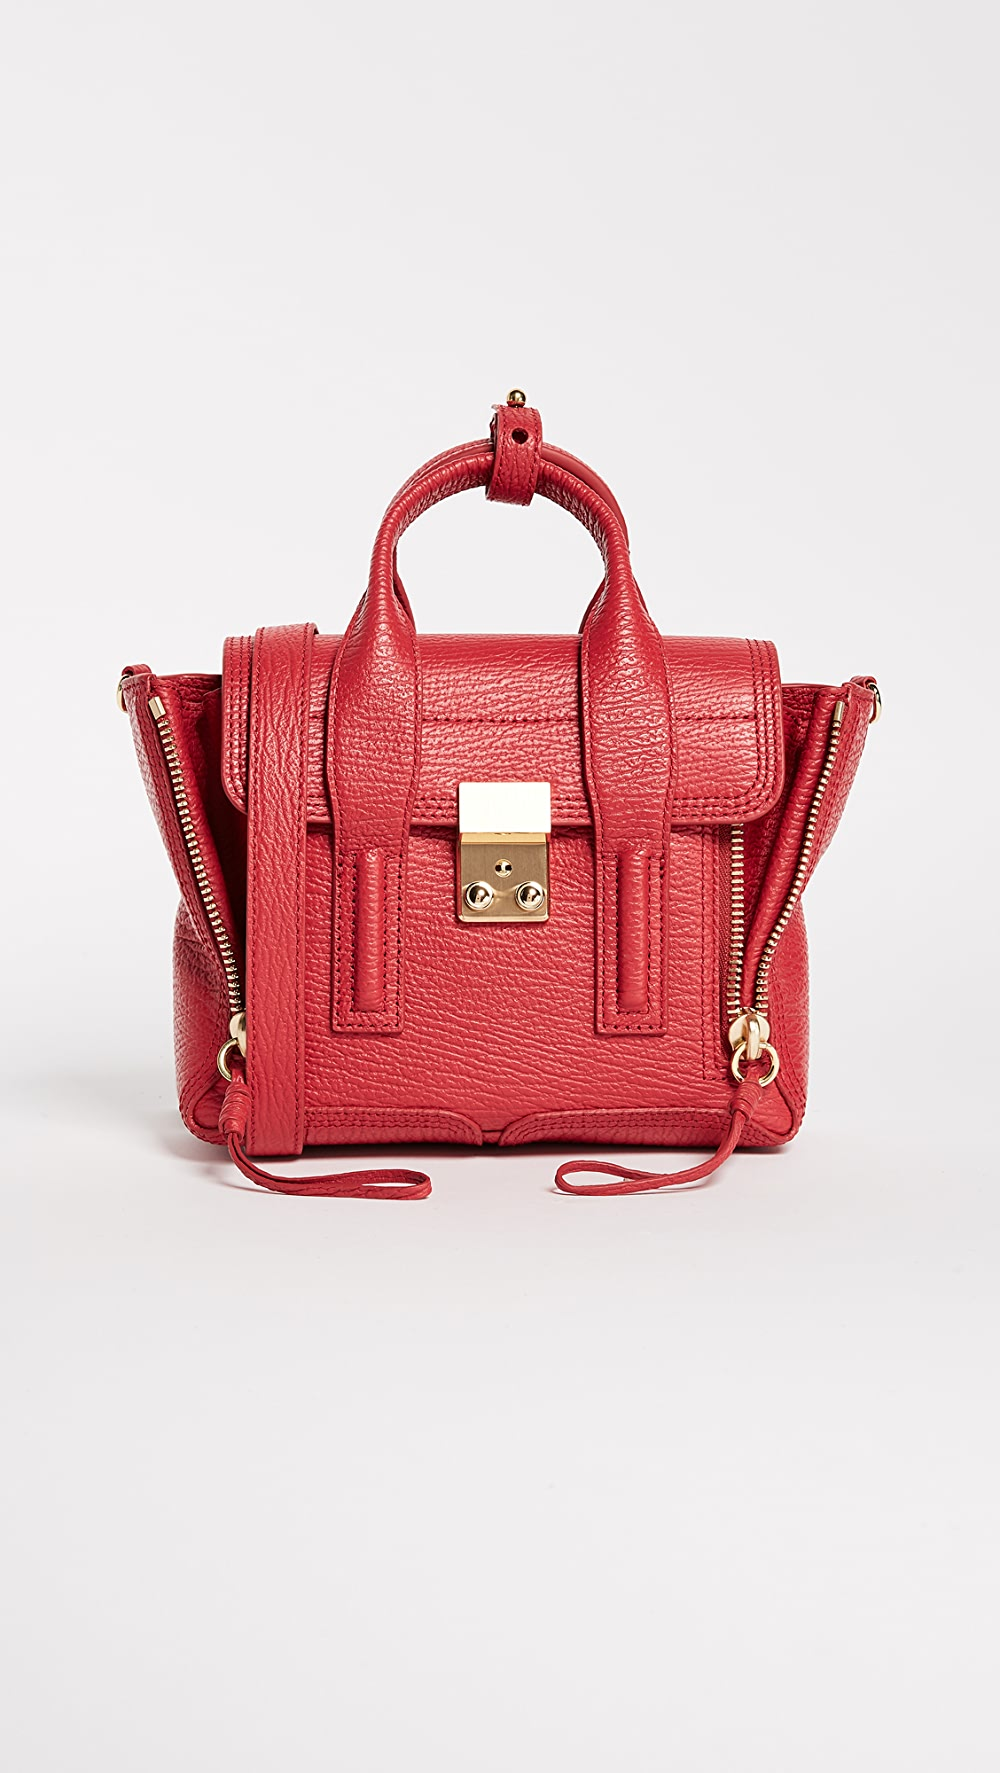 Active 3.1 Phillip Lim - Pashli Mini Satchel Ideal Gift For All Occasions